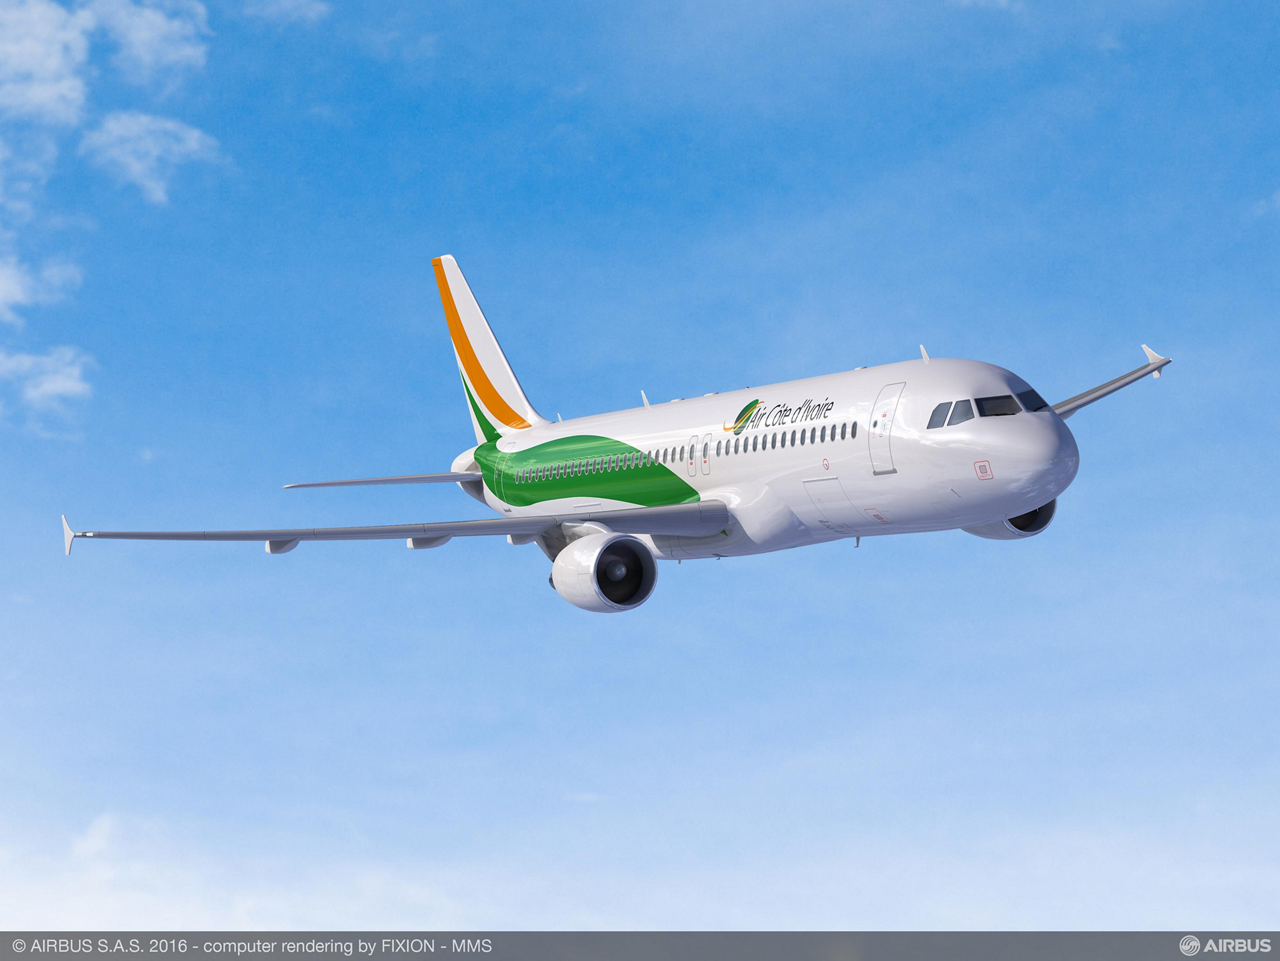 Ivory Coast flag carrier Air Côte D'Ivoire's firm order announced 28 April 2016 includes two A320ceo (current engine option) aircraft, along with two A320neo (new engine option) versions